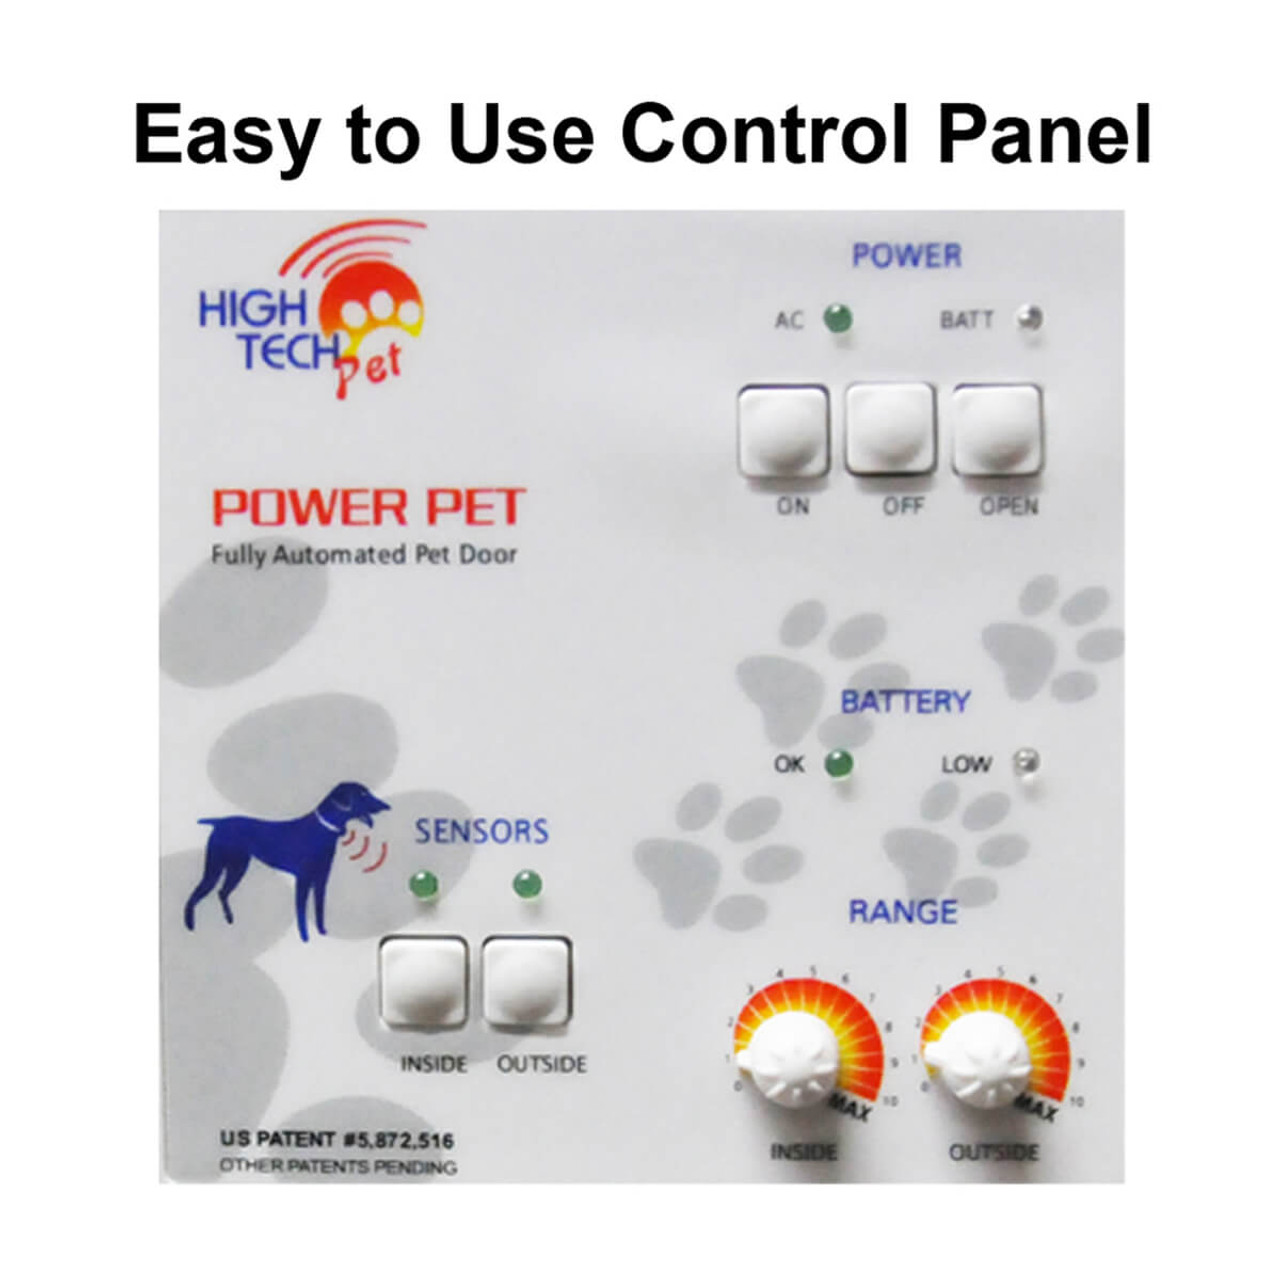 High Tech Electronic Motorized Doggy Doors Have Settings So You Can Only  Let Your Pets In